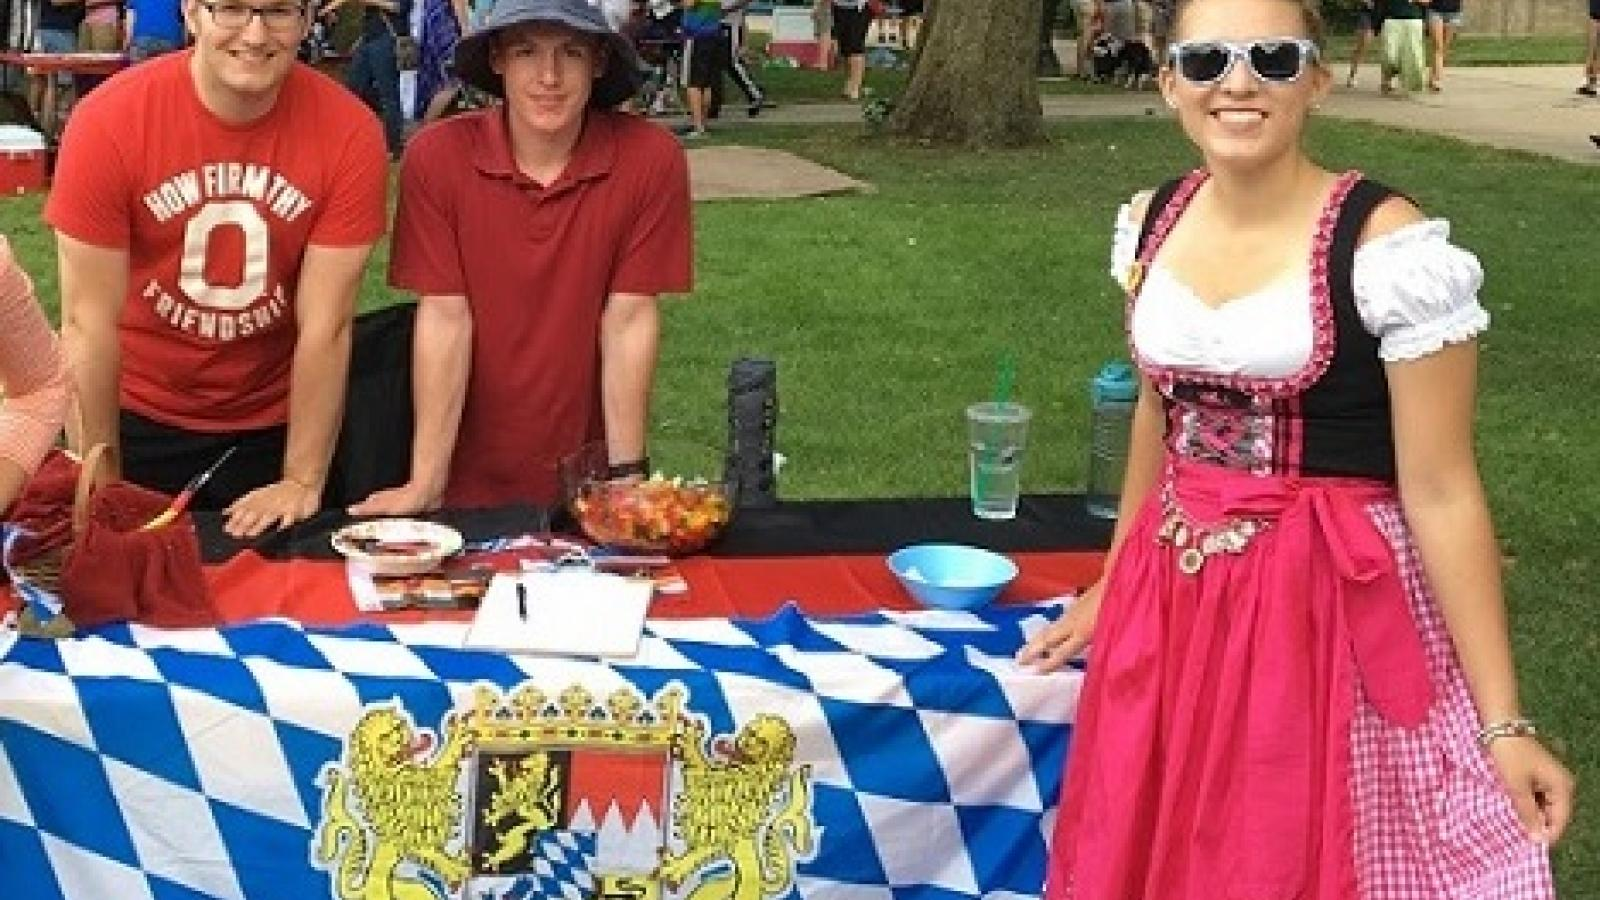 The OSU German Club on the Oval in Columbus